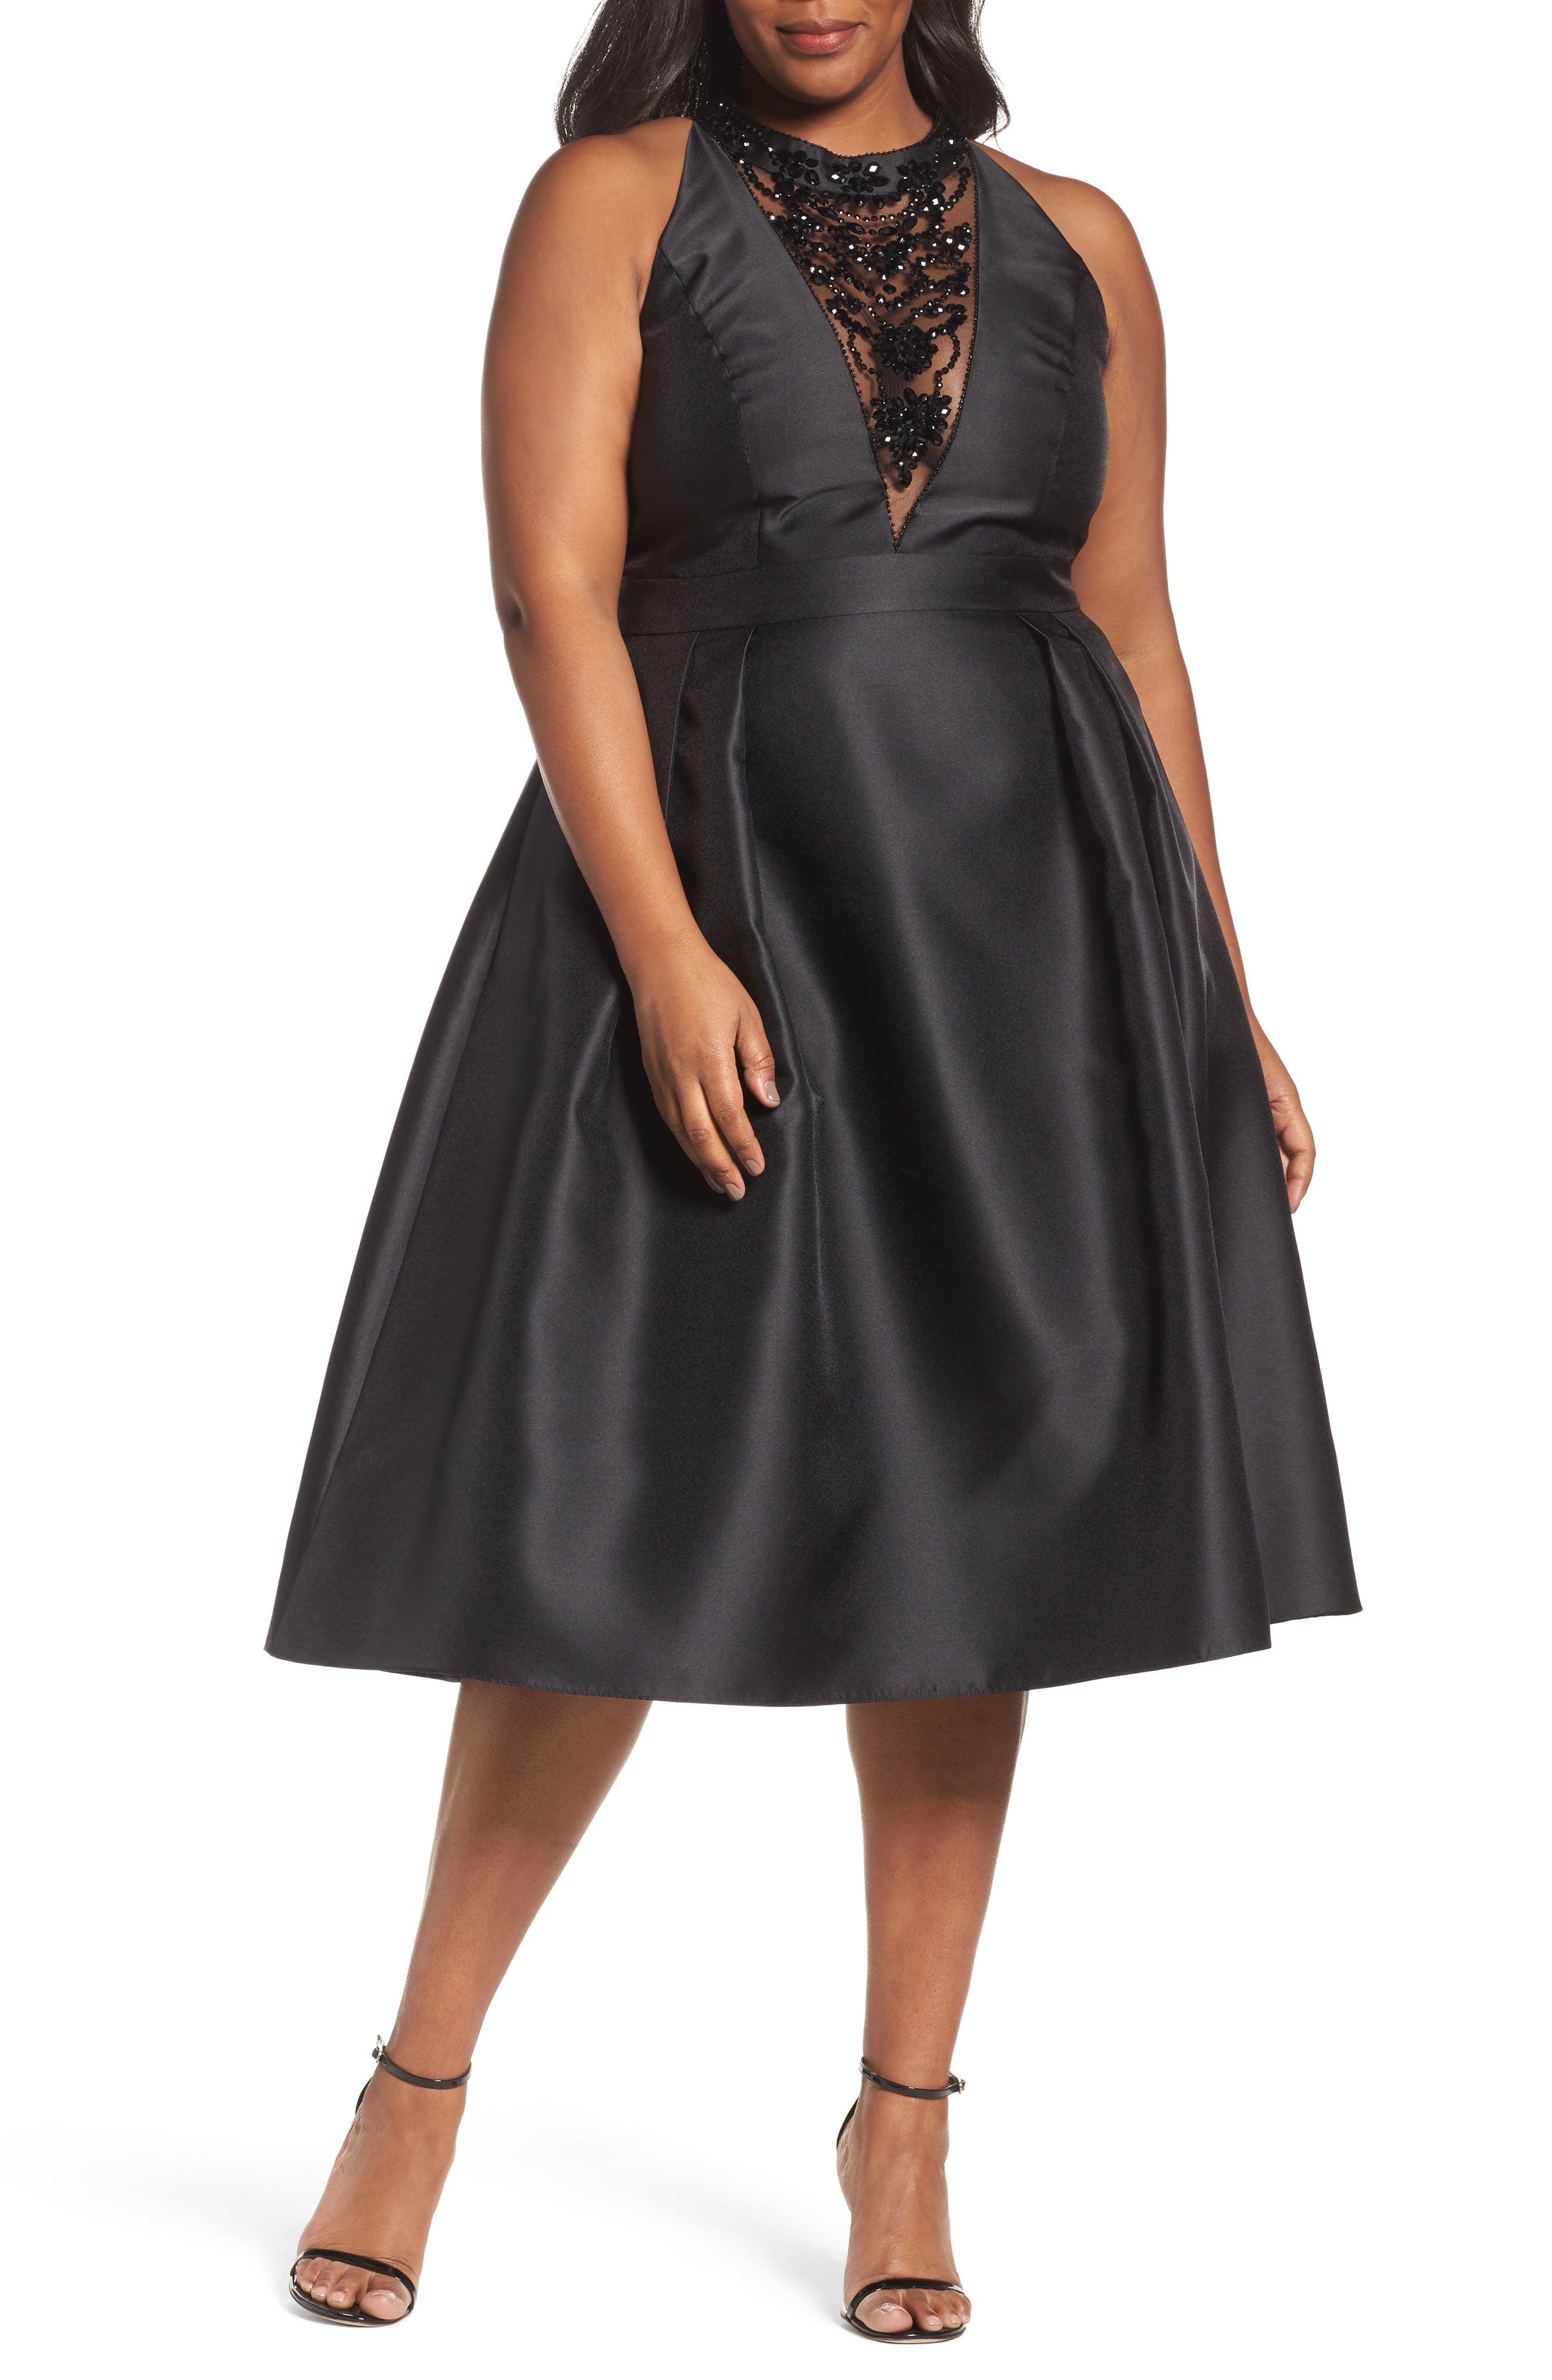 Alternate Image 1 Selected - Adriana Papell Beaded Fit & Flare Dress (Plus Size)